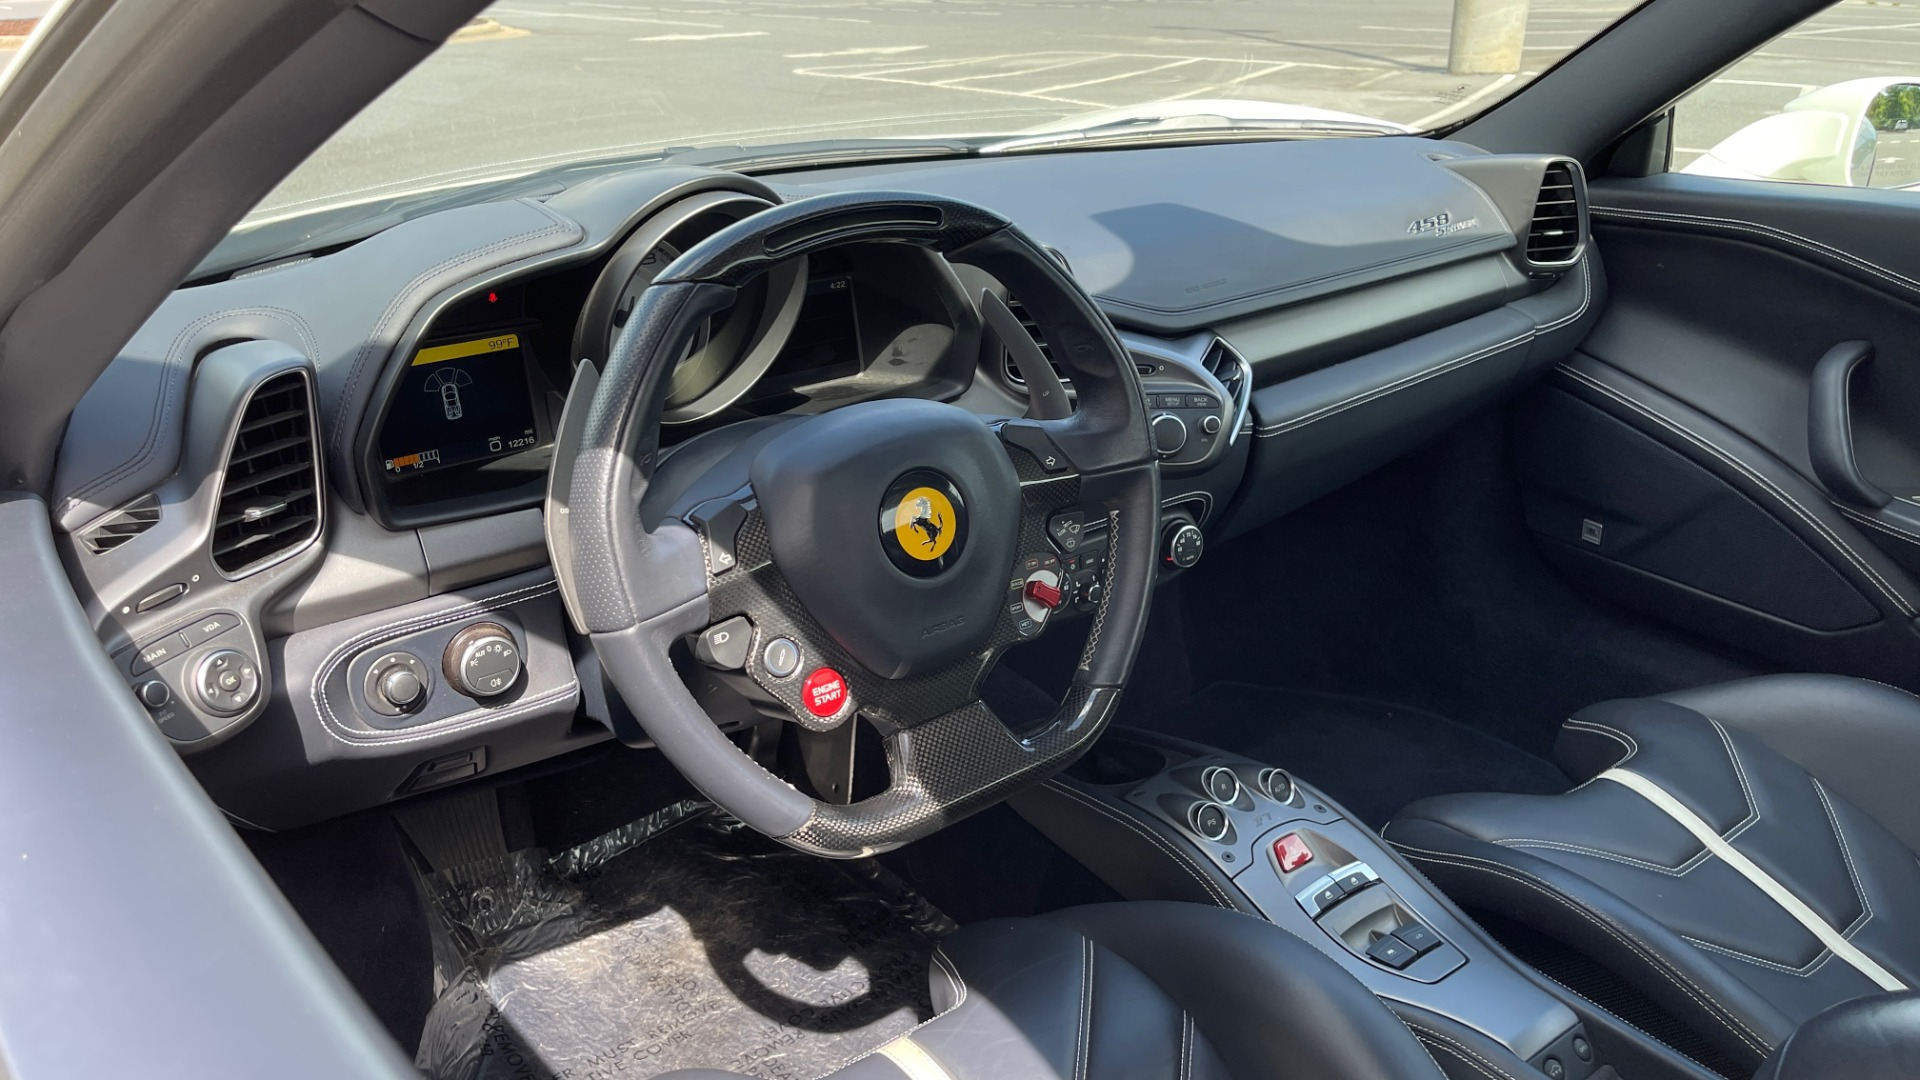 Used 2014 Ferrari 458 ITALIA SPIDER 570HP / F1 AUTO / CF SEATS / CARBON BRAKES / REARVIEW for sale $249,999 at Formula Imports in Charlotte NC 28227 44